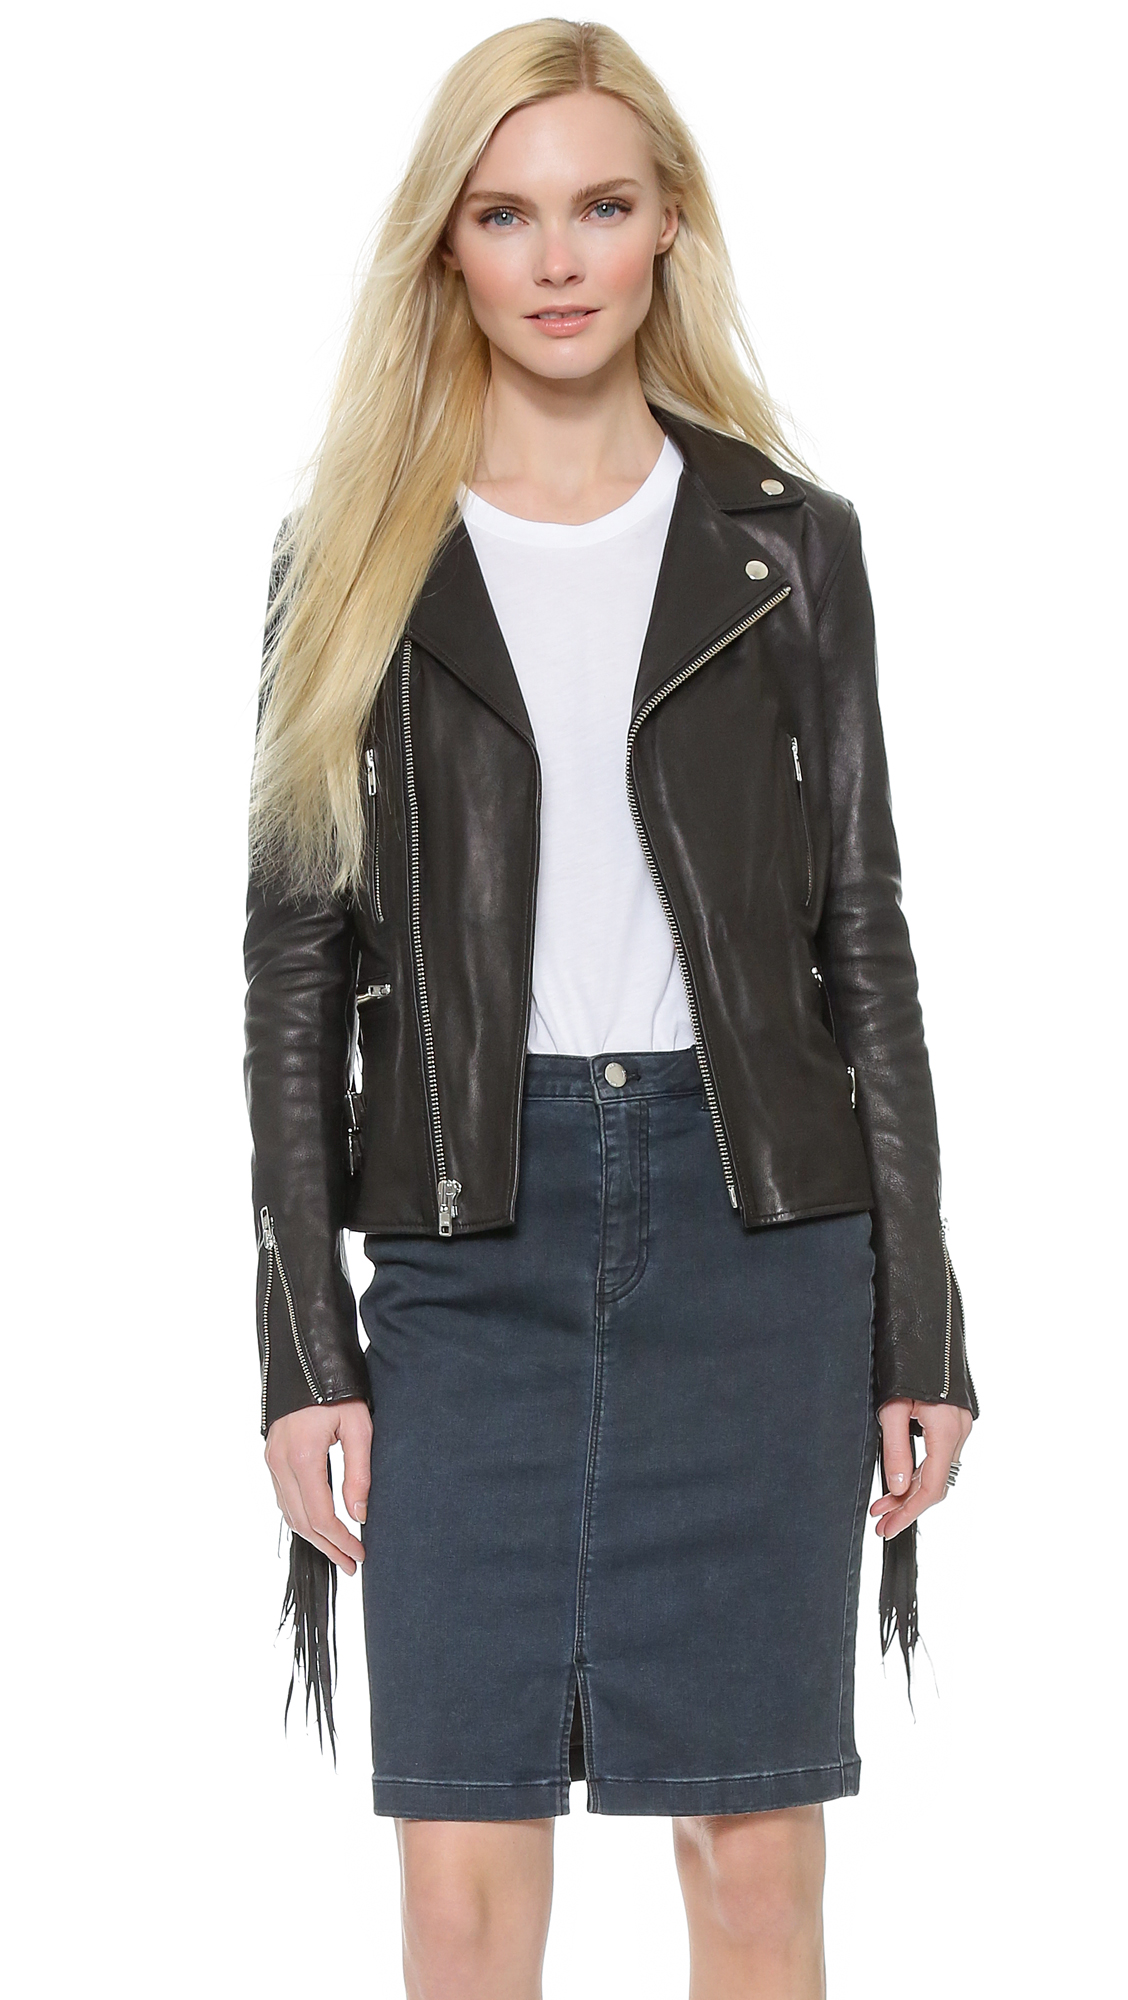 Leather jacket with fringe - Blk Dnm Leather Jacket 10 With Fringe 15 Off First App Purchase With Code 15foryou